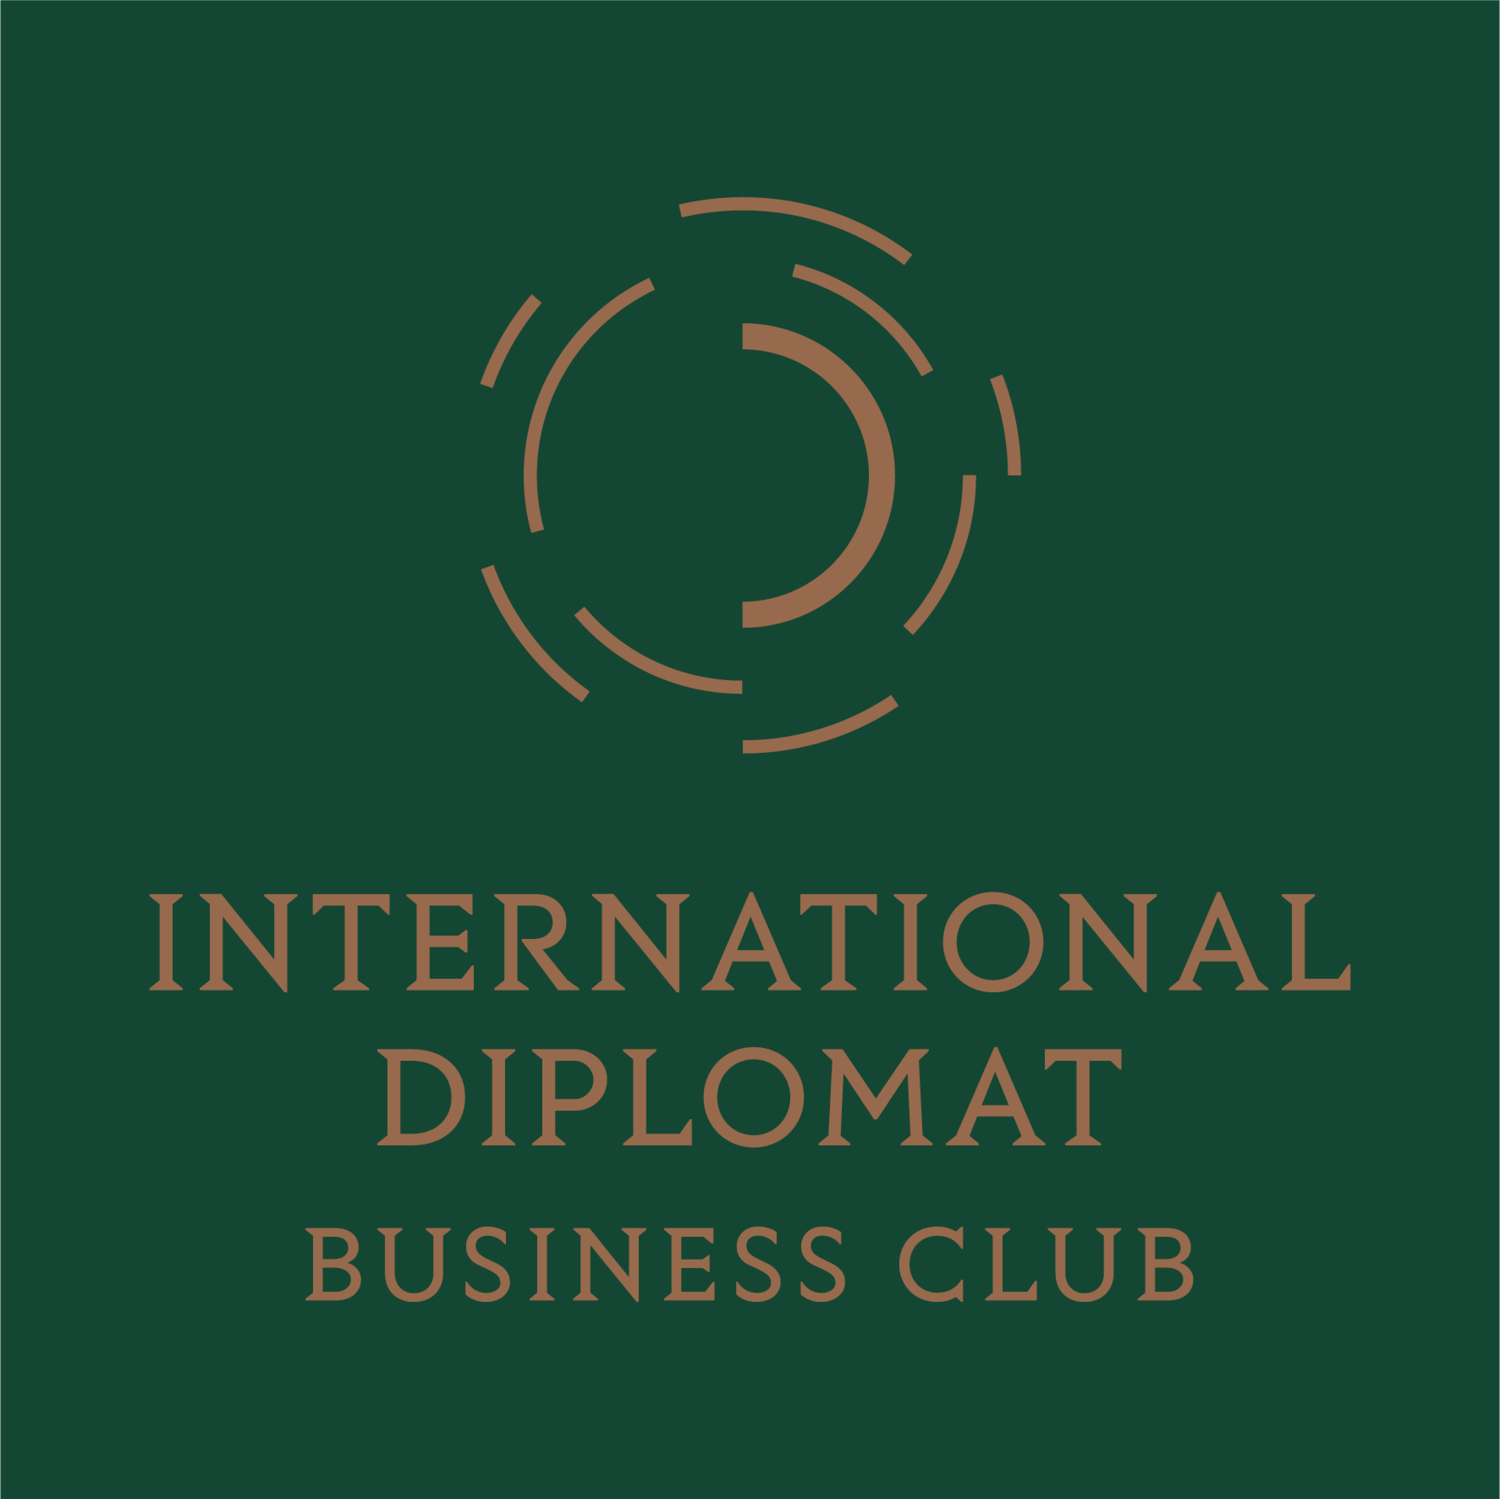 The International Diplomat Business Club